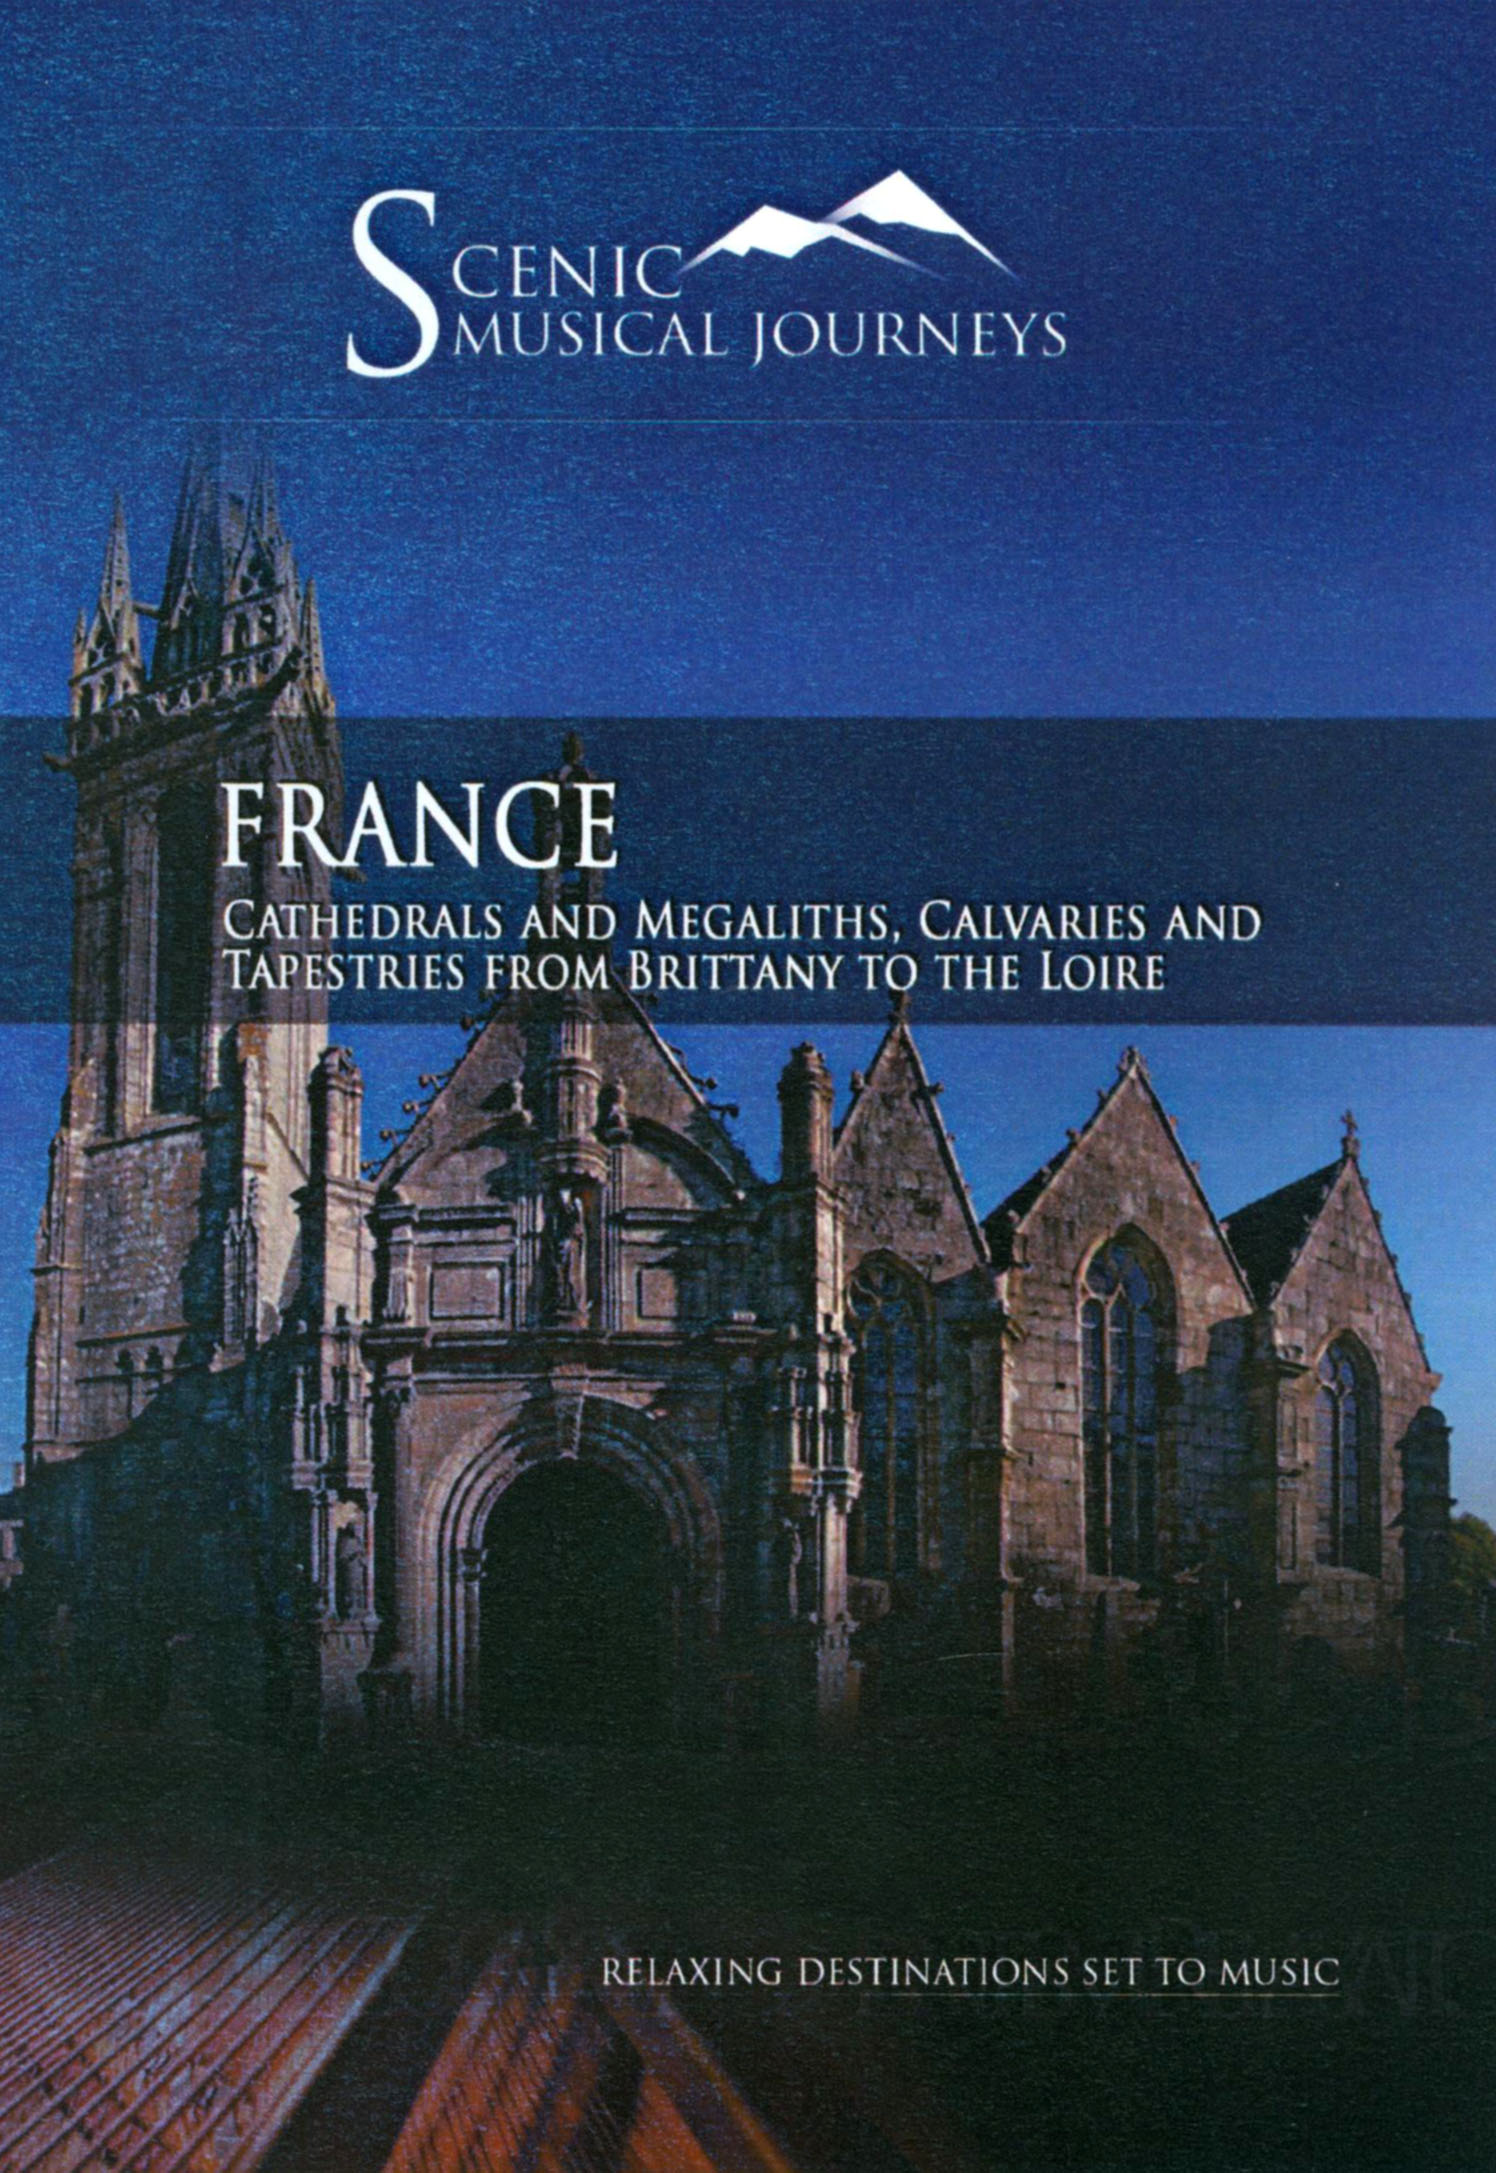 Scenic Musical Journeys: France - Cathedrals and Megaliths, Calvaires and Tapestries From Brittany